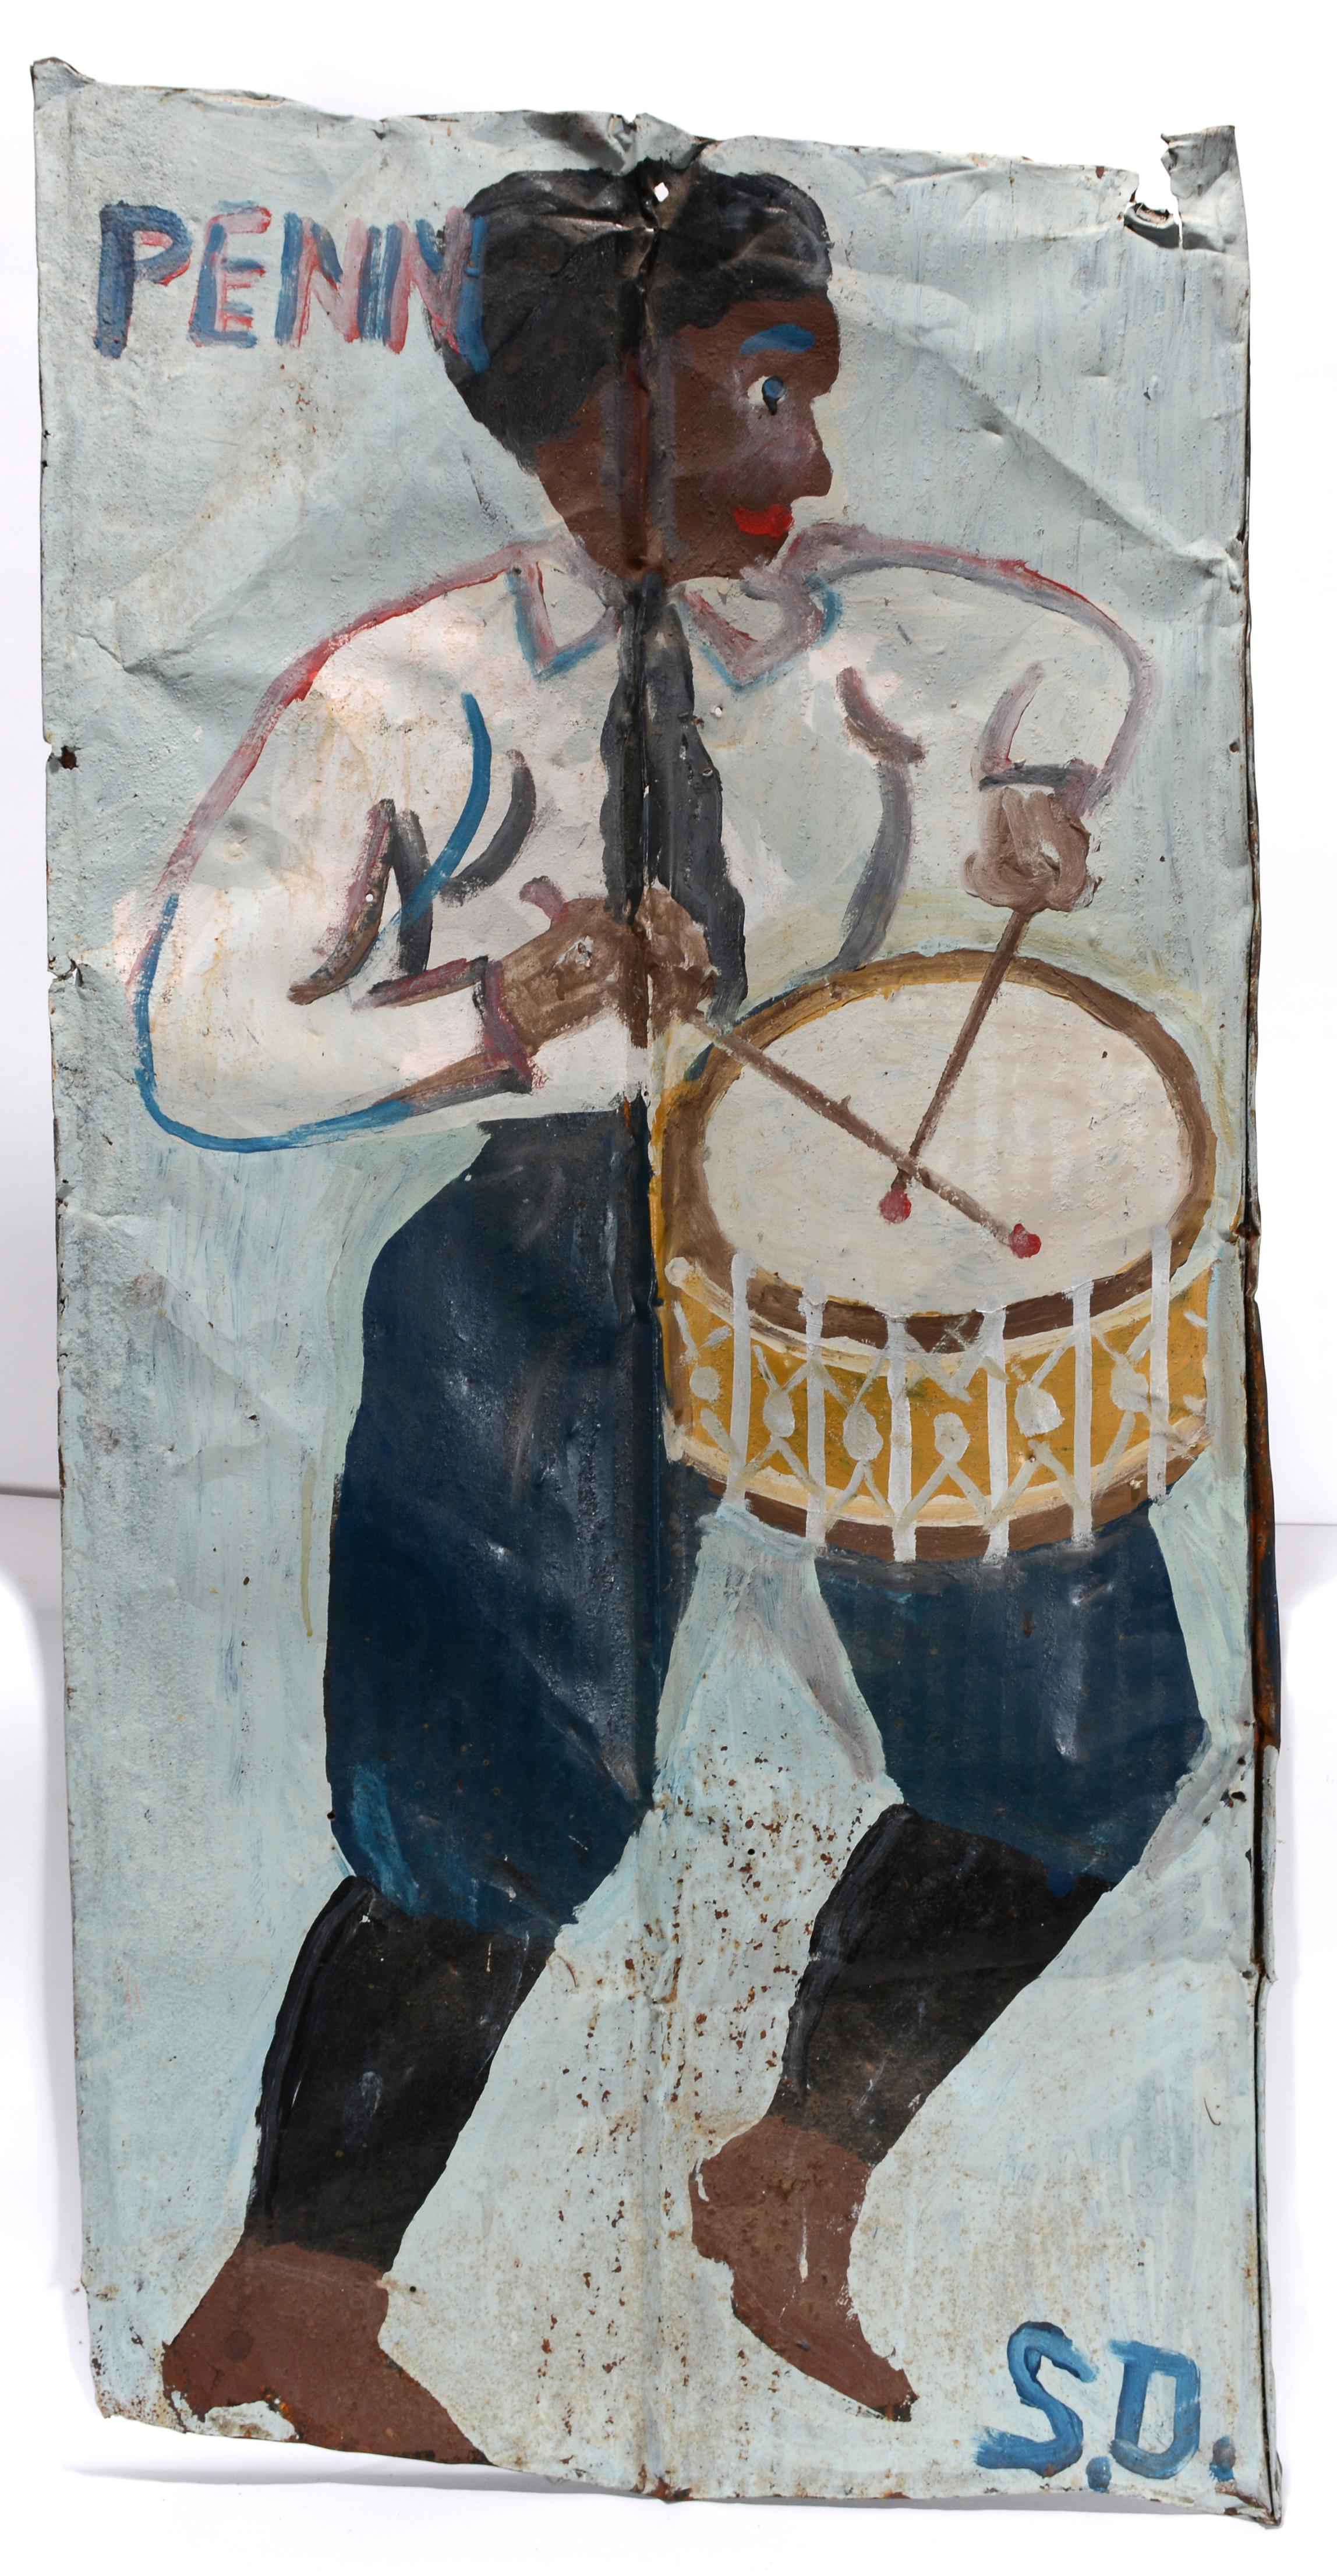 Penn Drummer Boy, rendered in house paint on discarded tin roofing material around 1983 by Sam Doyle.